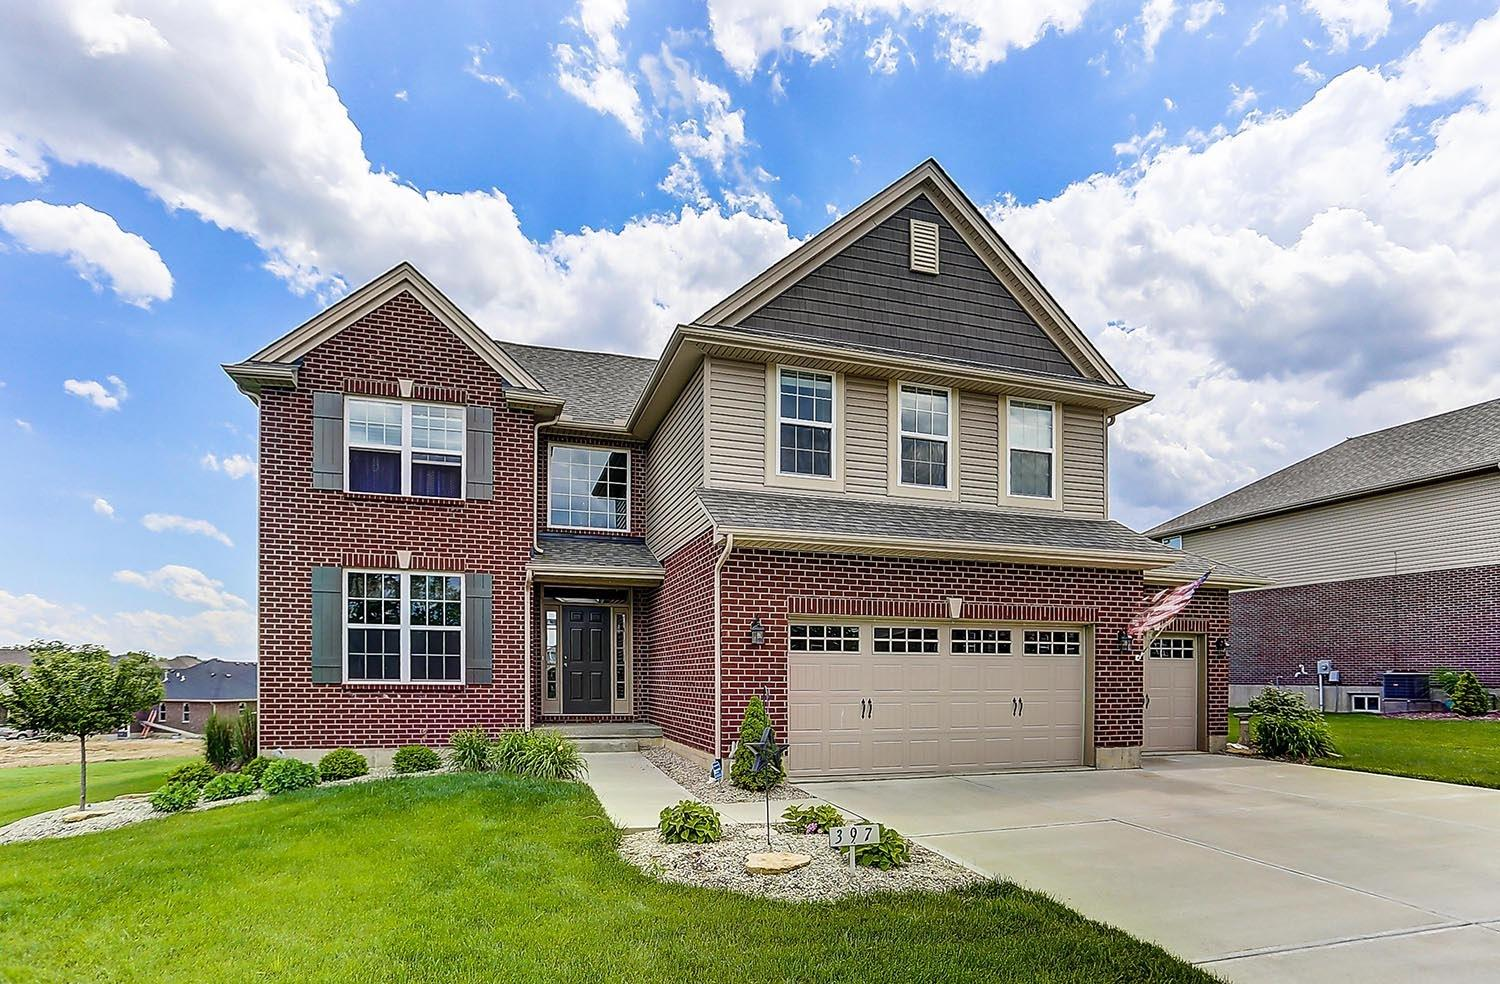 397 Belleclaire Hill, Clearcreek Twp., OH 45458